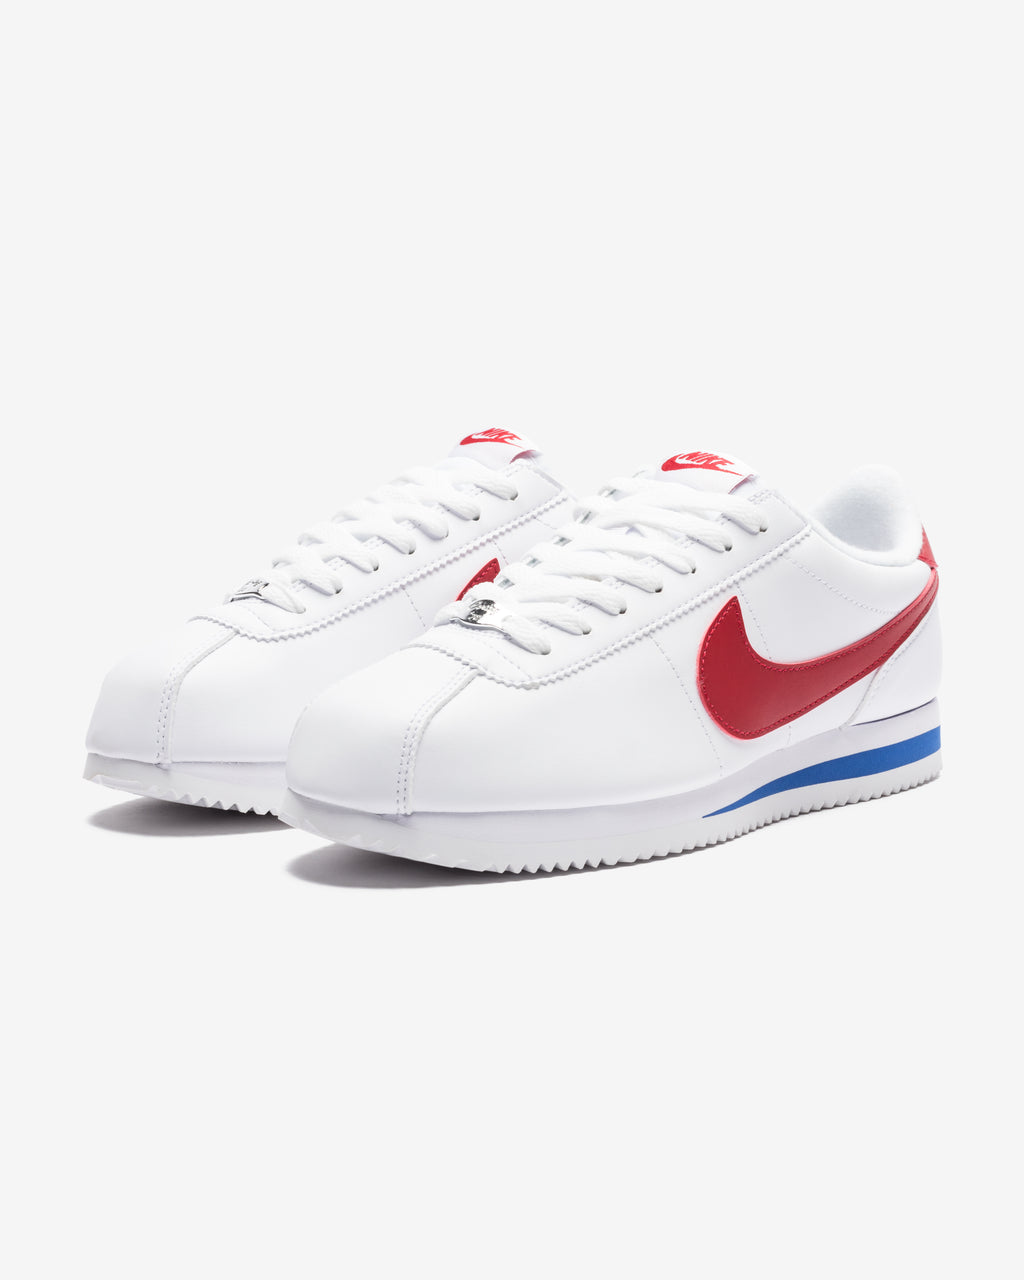 CORTEZ BASIC - WHITE/ VARSITYRED/ VARSITYROYAL